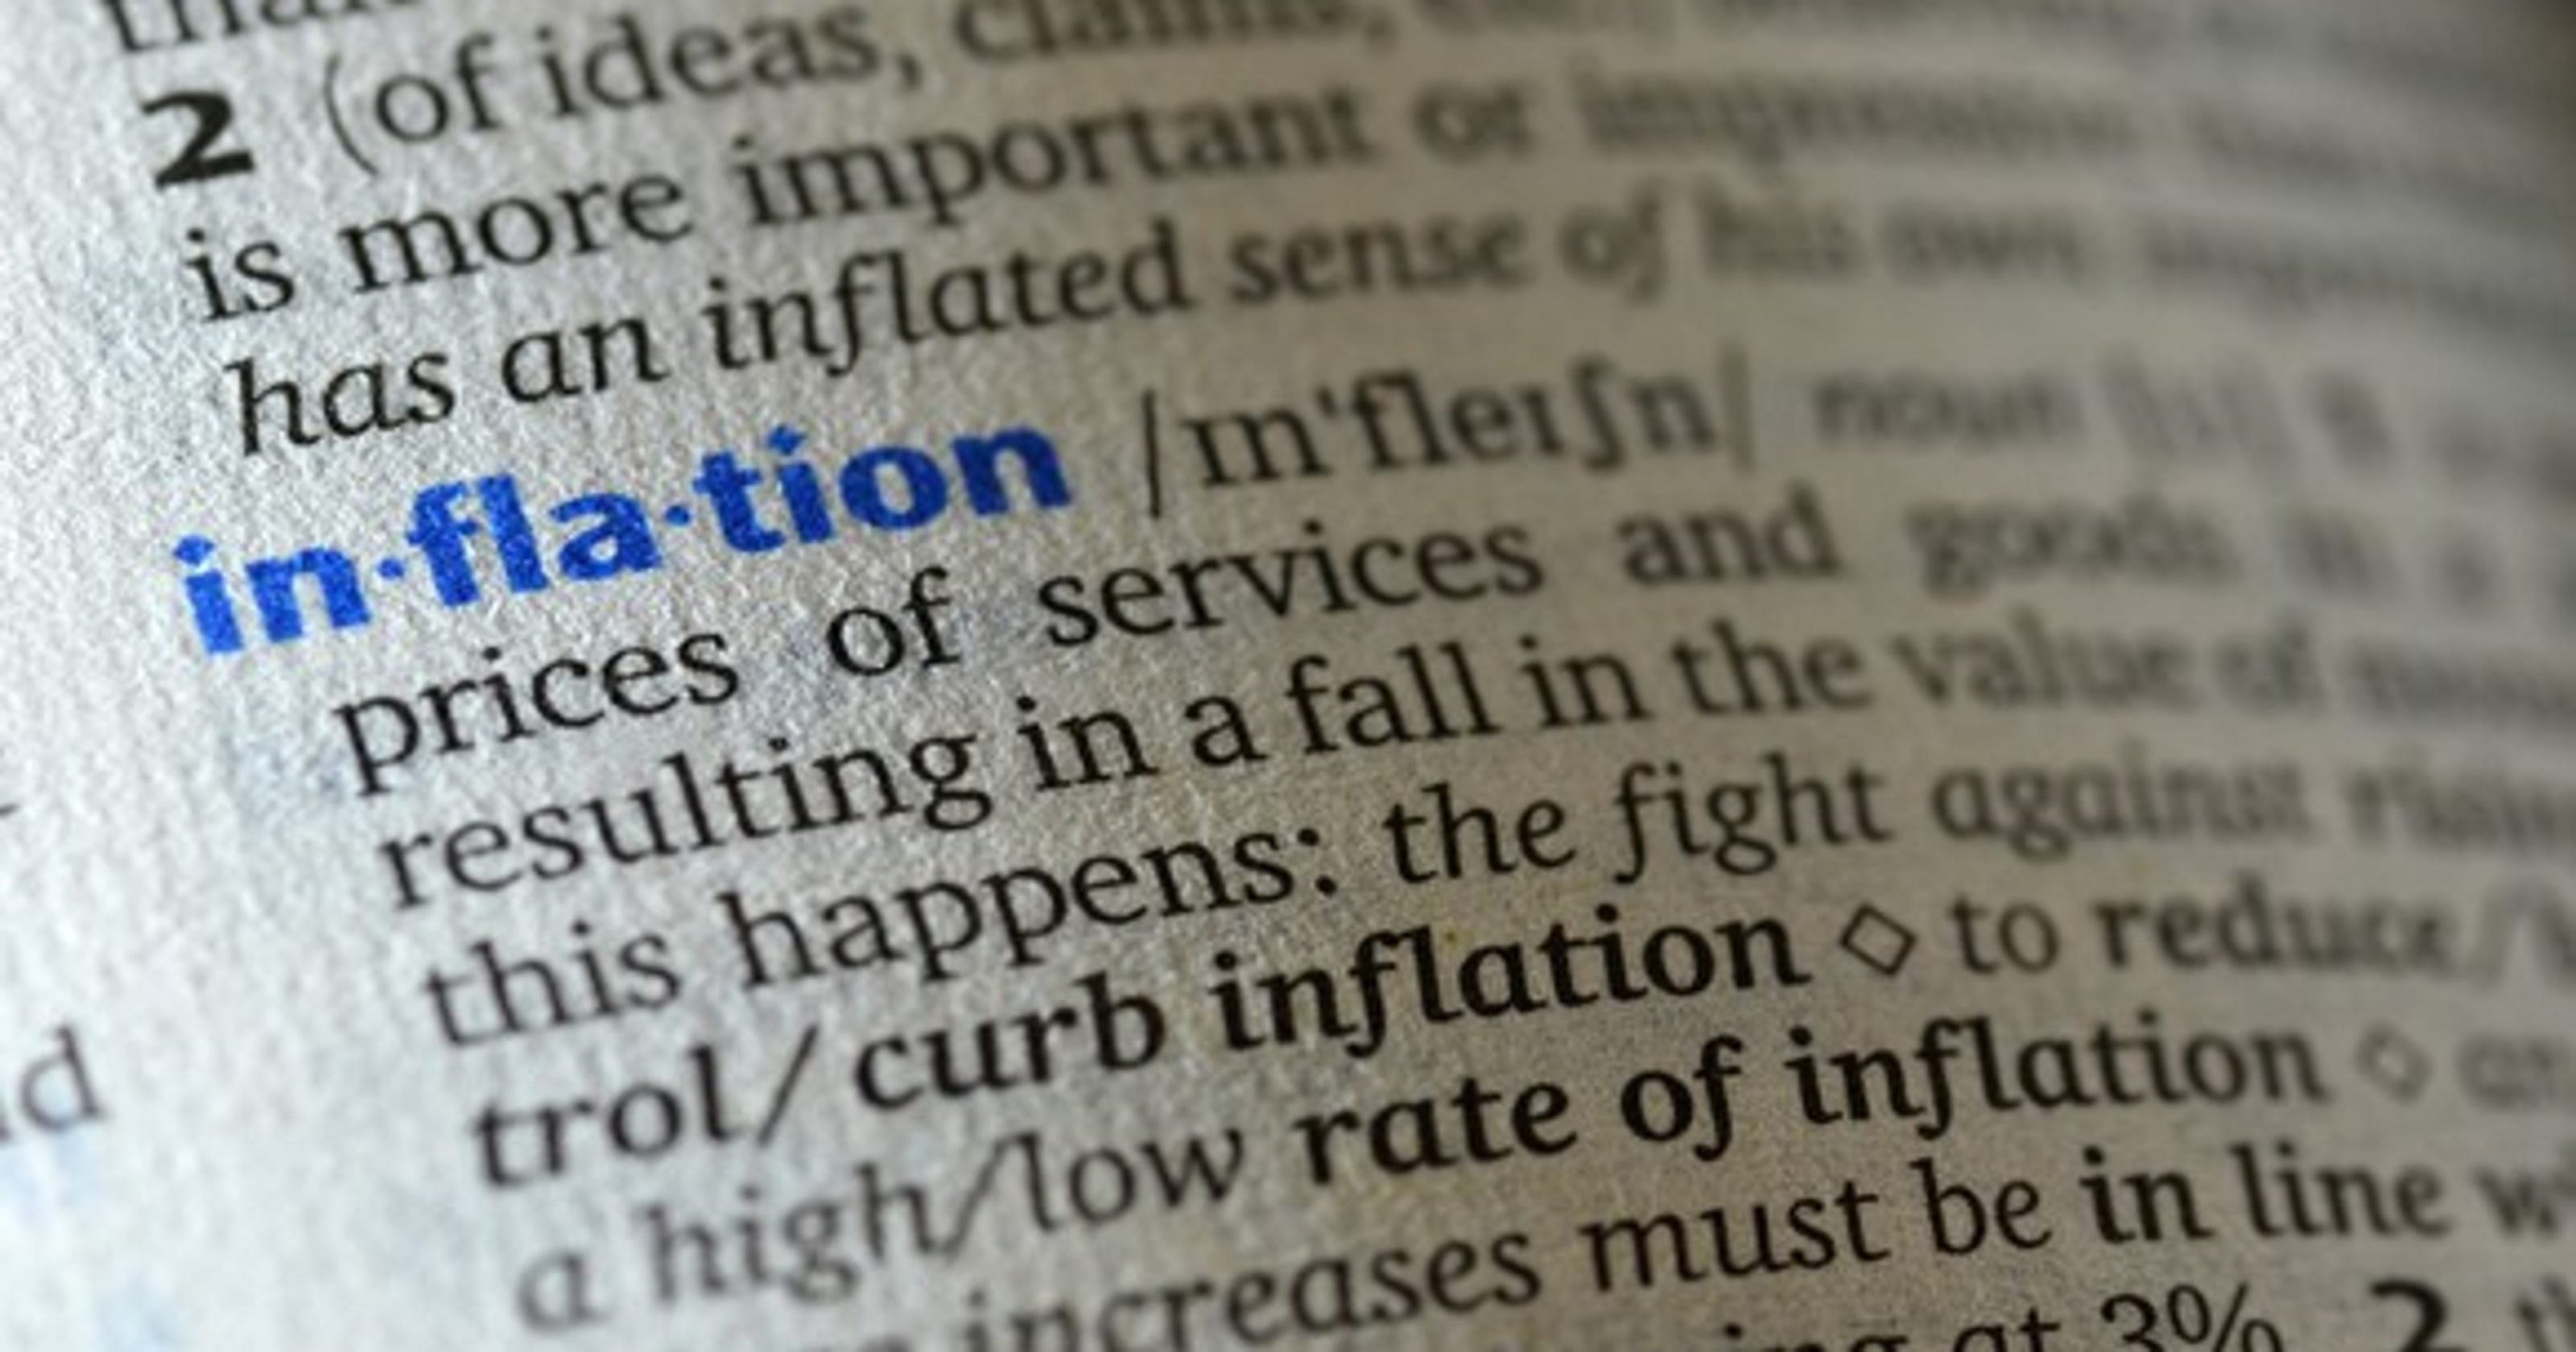 Retirement planning: How to keep inflation from eating your savings?